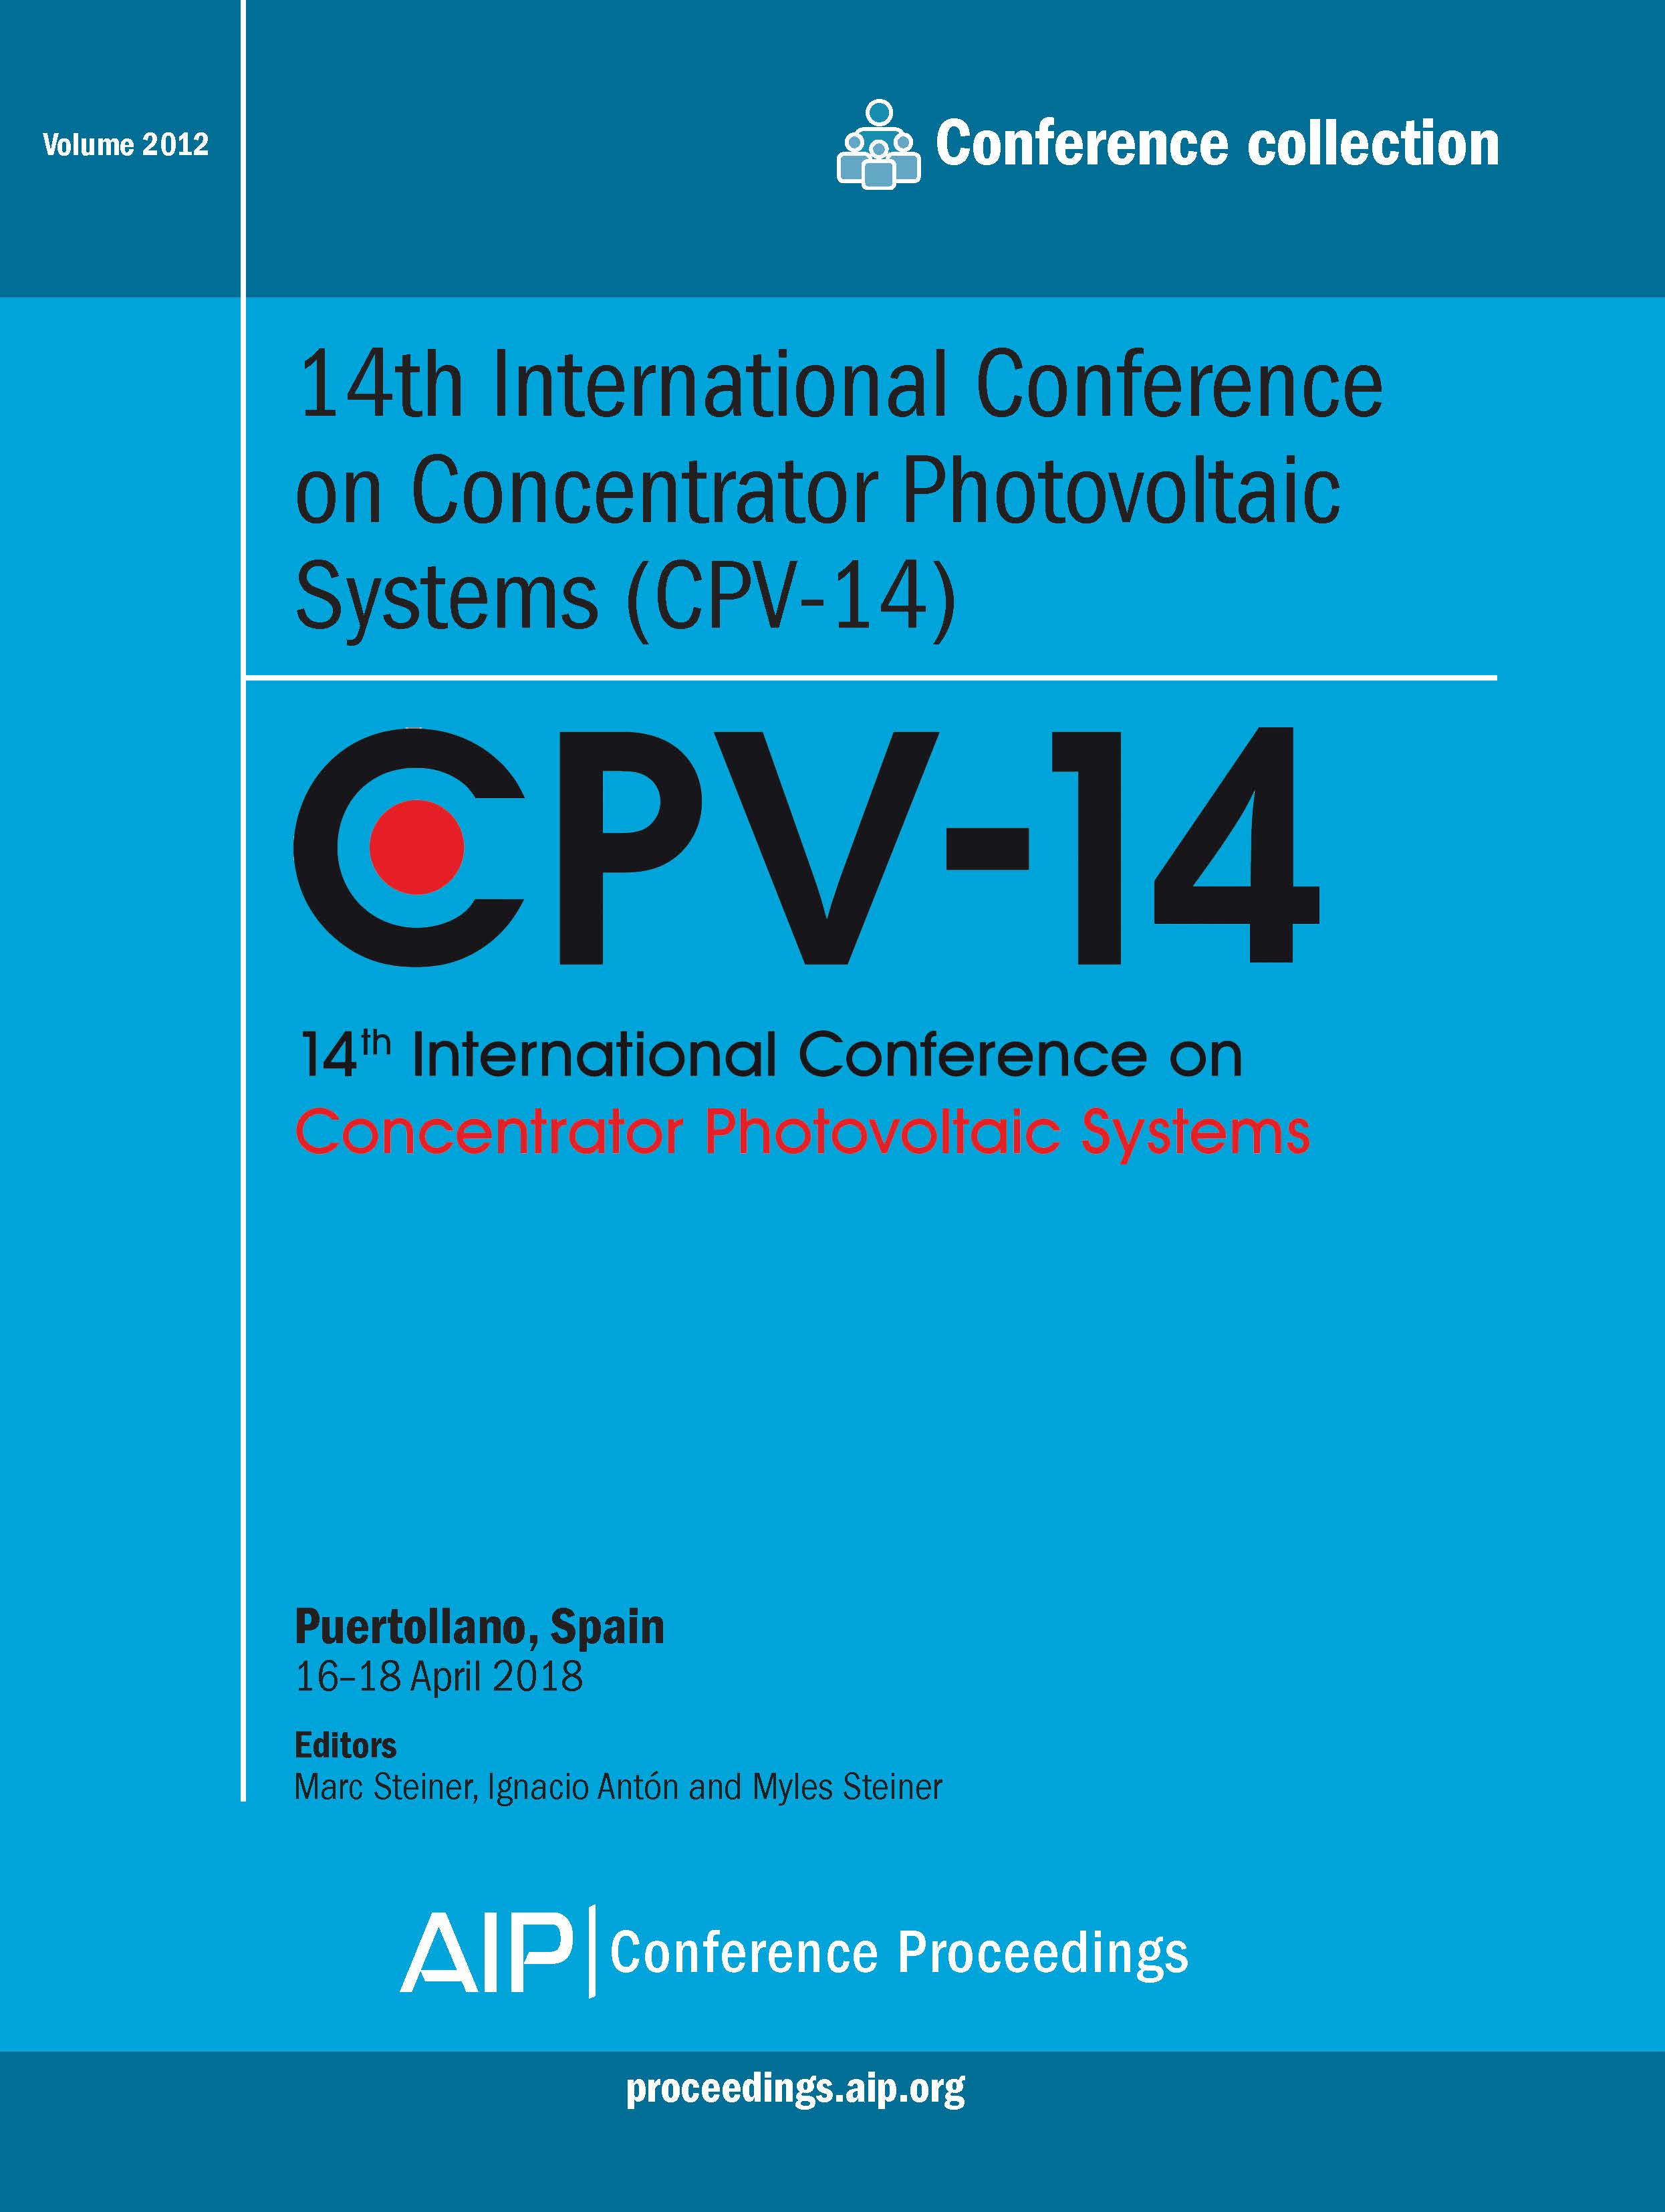 Volume 2012: 14th International Conference on Concentrator